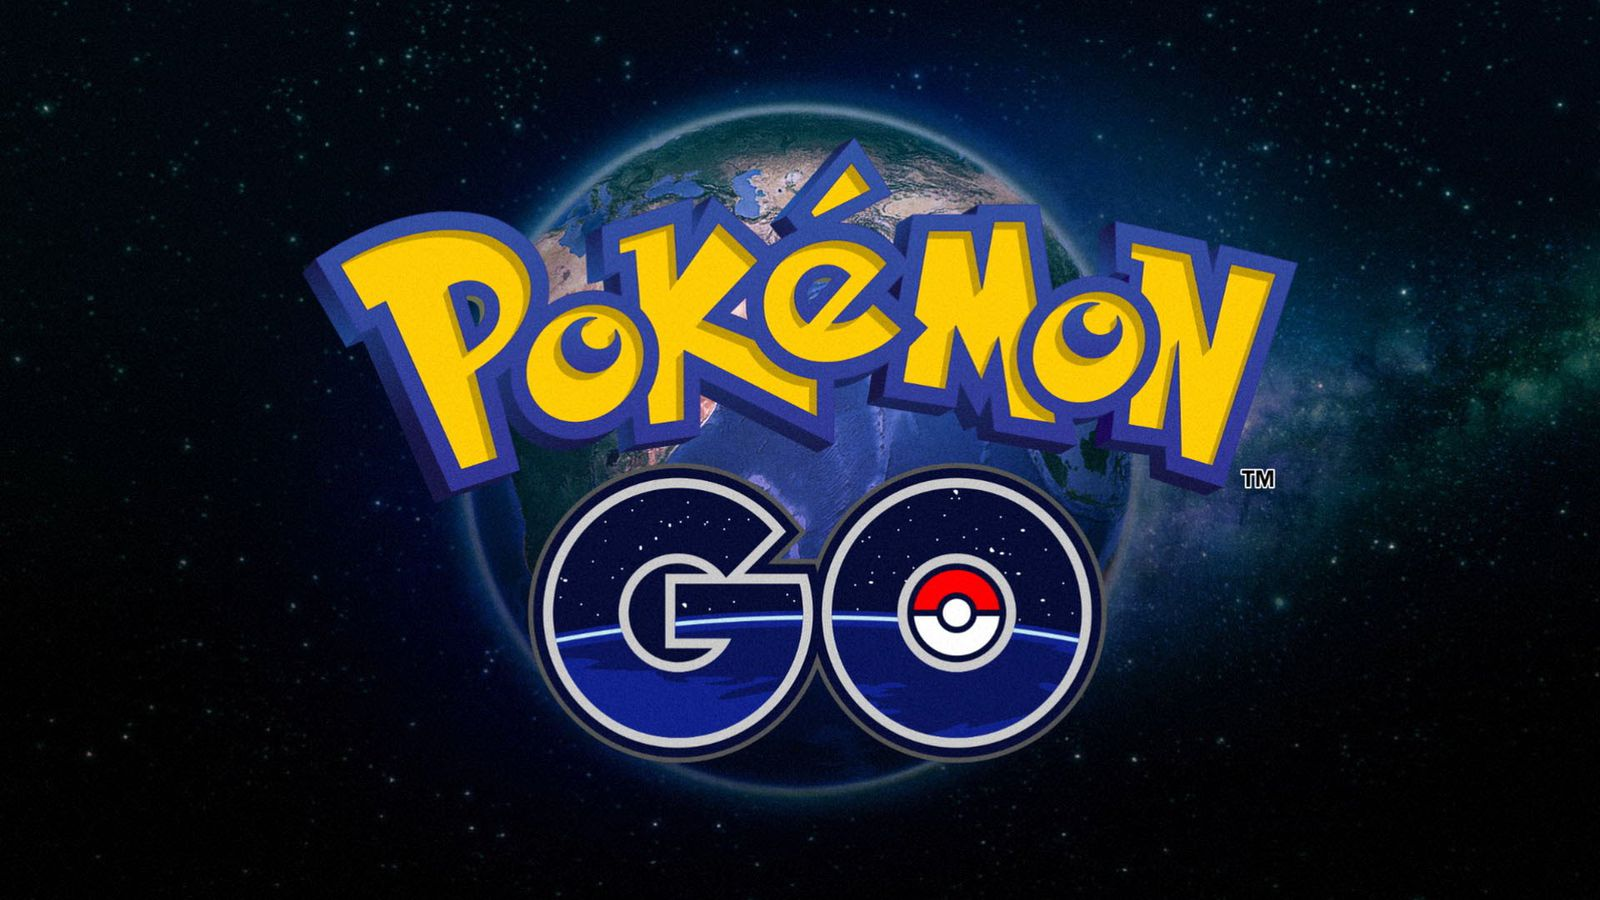 there is a fake and dangerous Pokemon go on play store